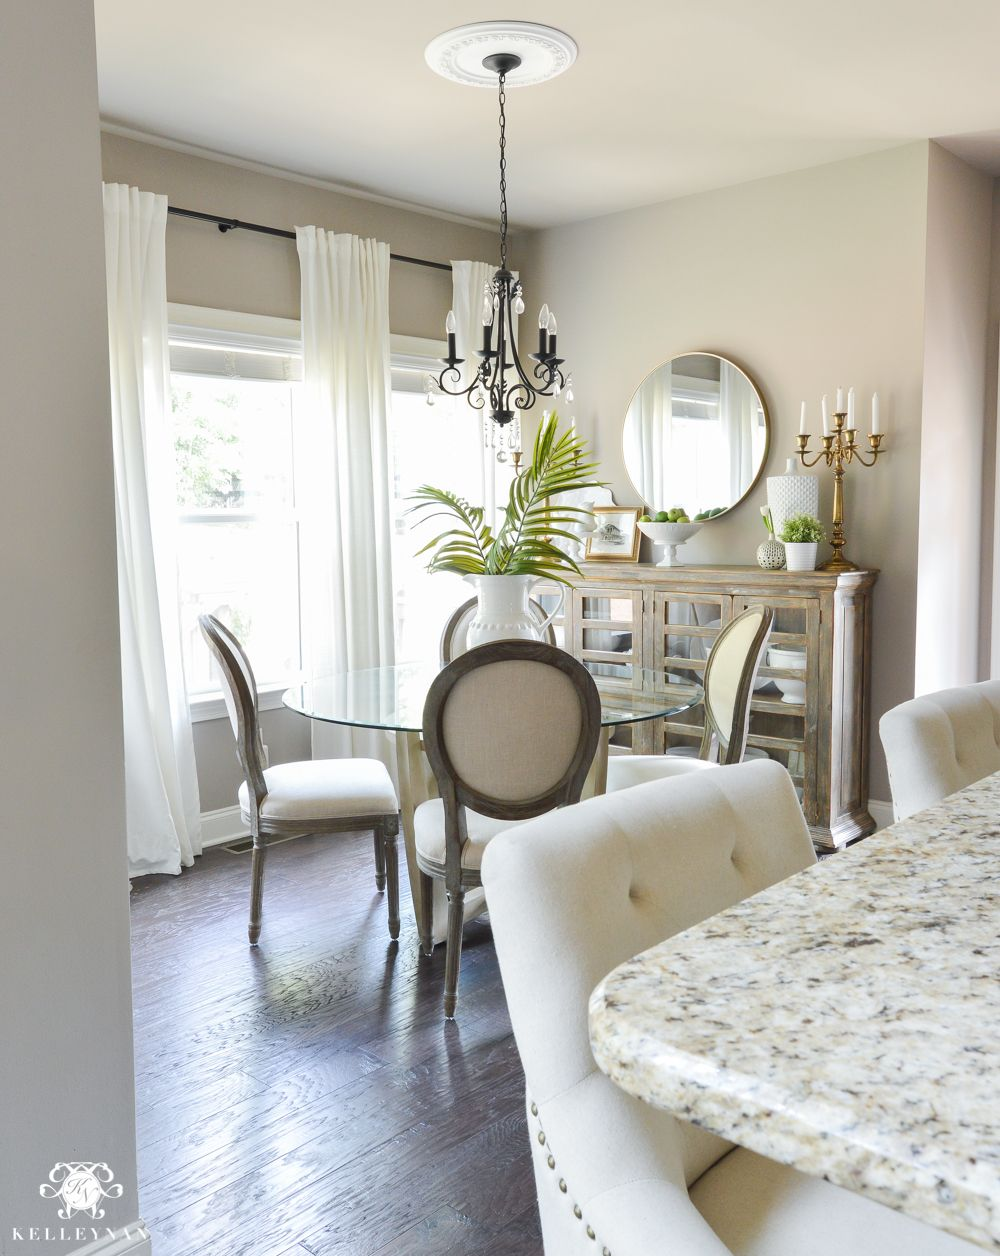 Shades Of Summer Home Tour With Neutrals And Naturals Ikea Dining RoomHomesenseChair